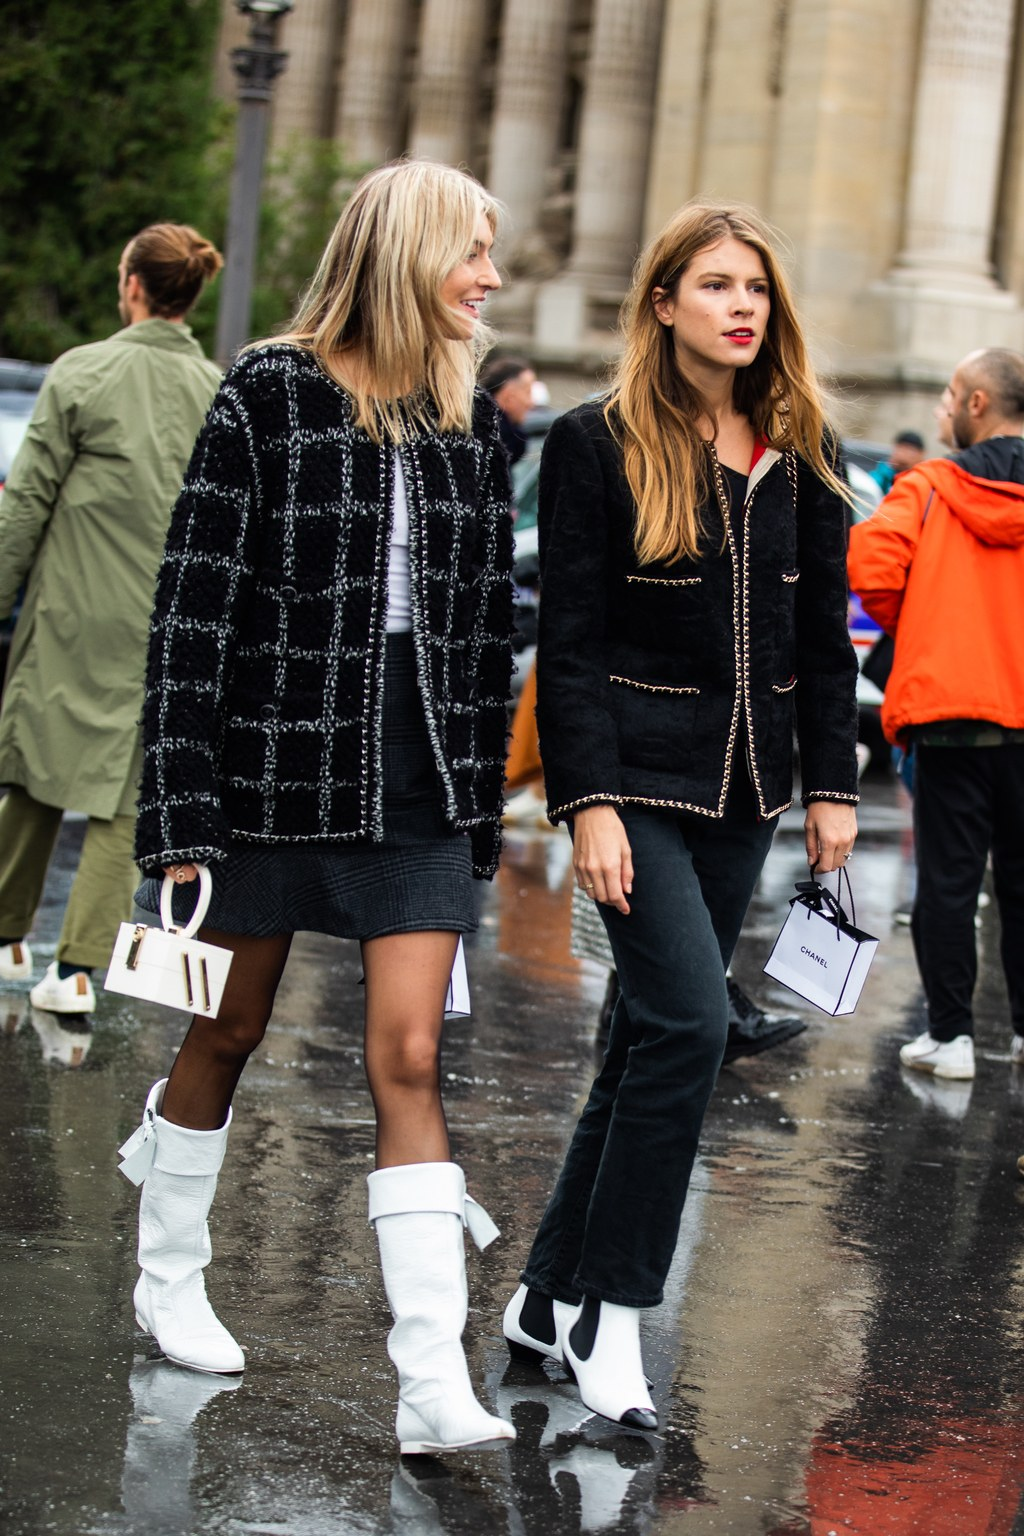 CHANEL INSPIRED JACKETS